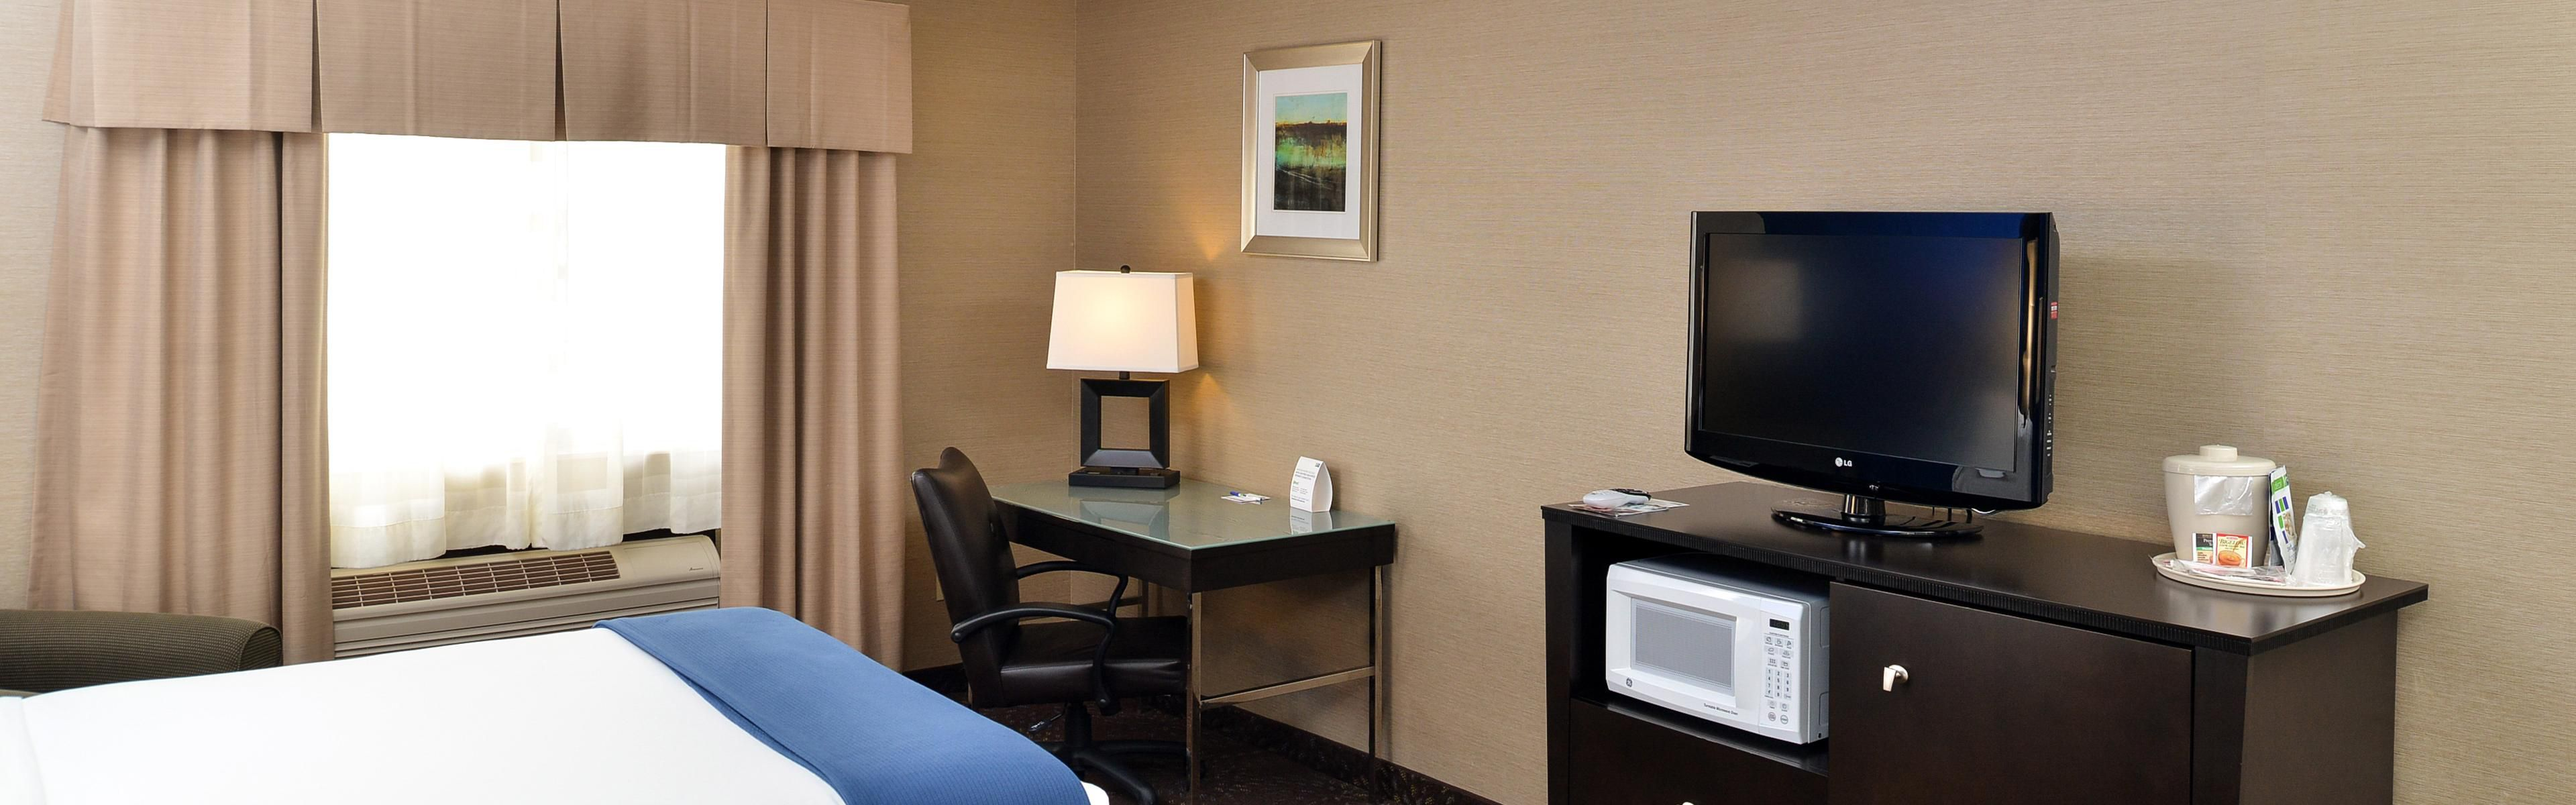 Holiday Inn Express & Suites Charlotte image 1